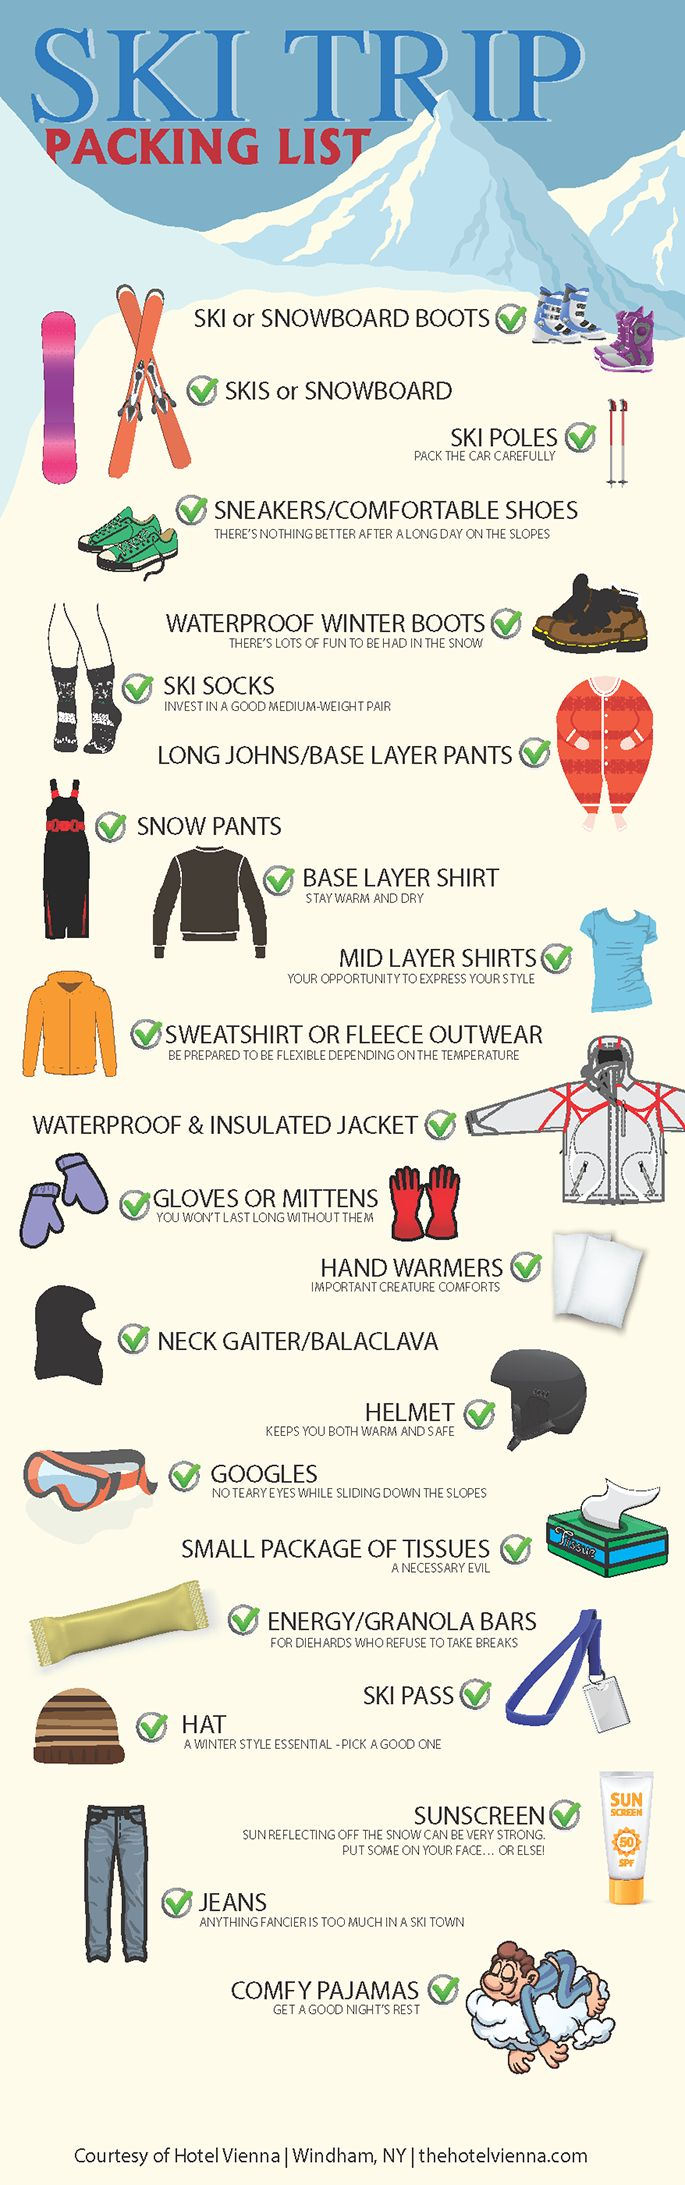 what to pack for a ski trip - Ask.com Image Search